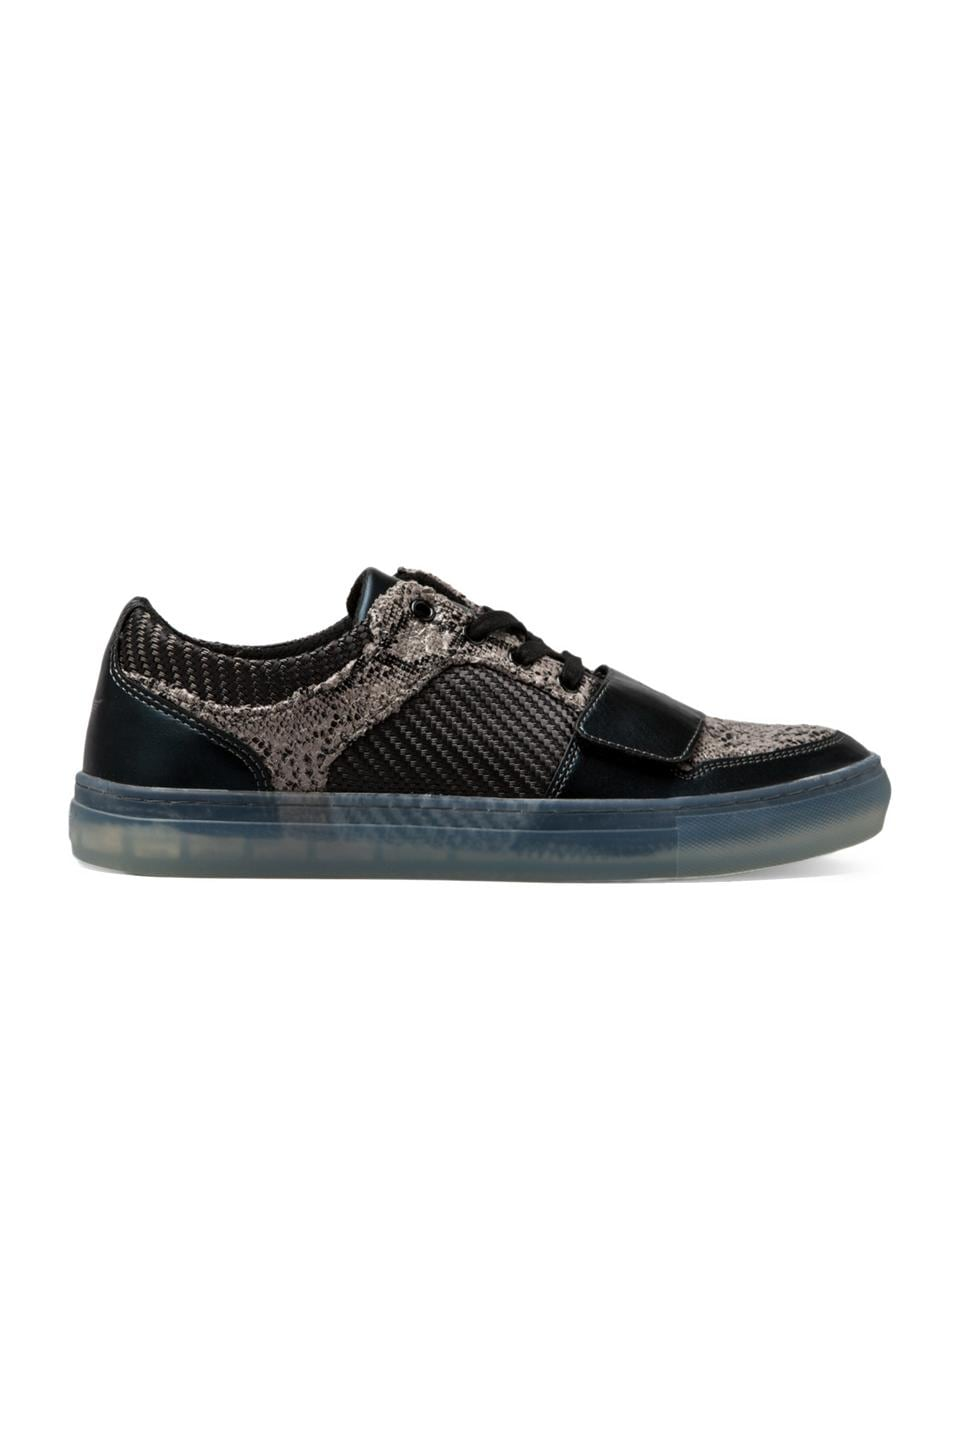 Creative Recreation Cesario Lo X in Black Charcoal Snake